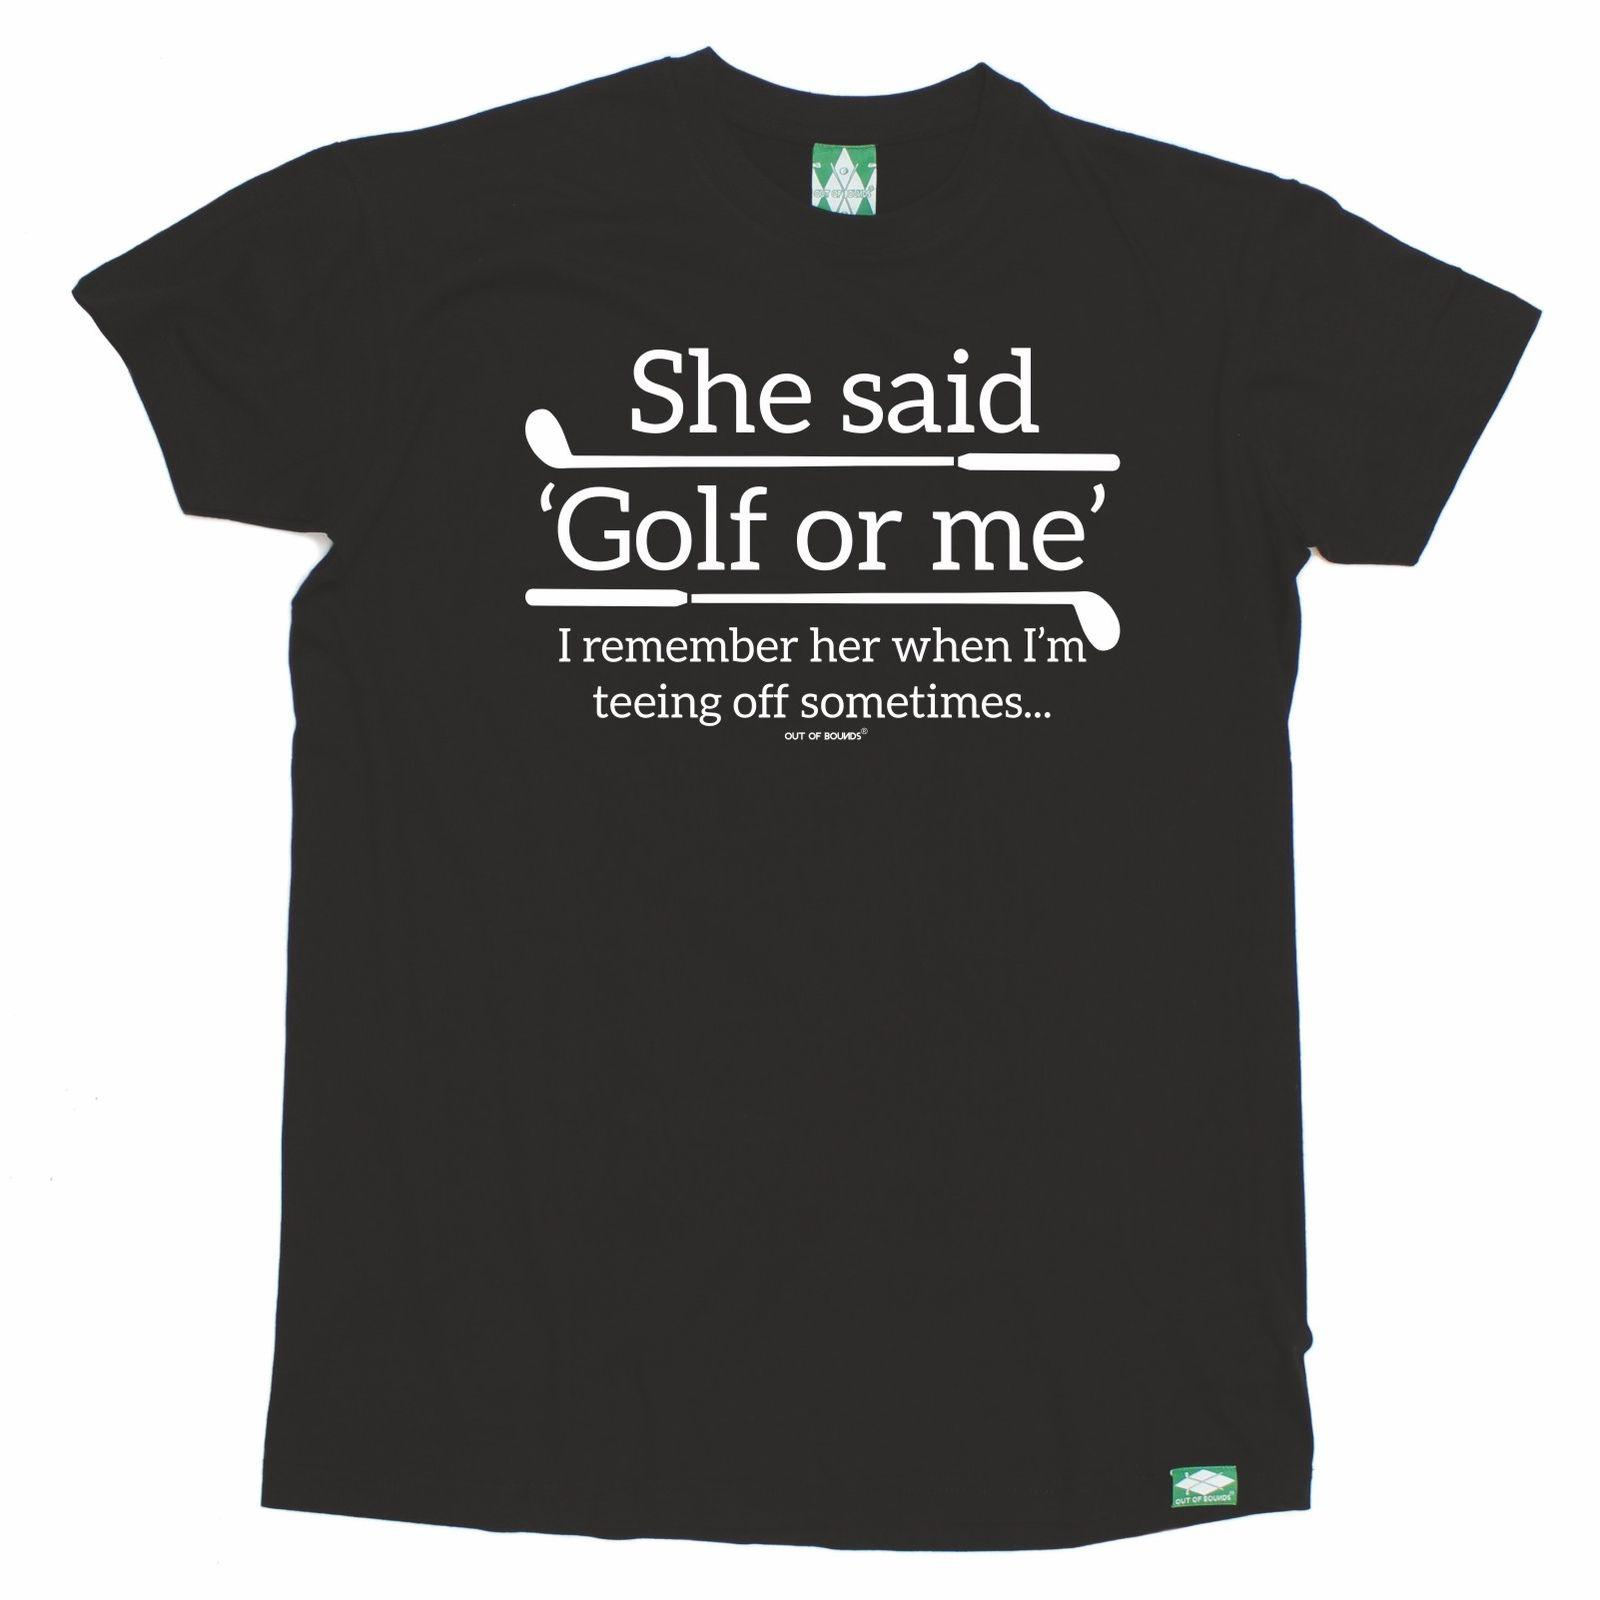 Golfing She Said Golf Or Me Rude Adult Clubs Golfer Funny Birthday T SHIRT 100 Cotton Short Sleeve O Neck Shirt Top Tee Basic Best Shirts